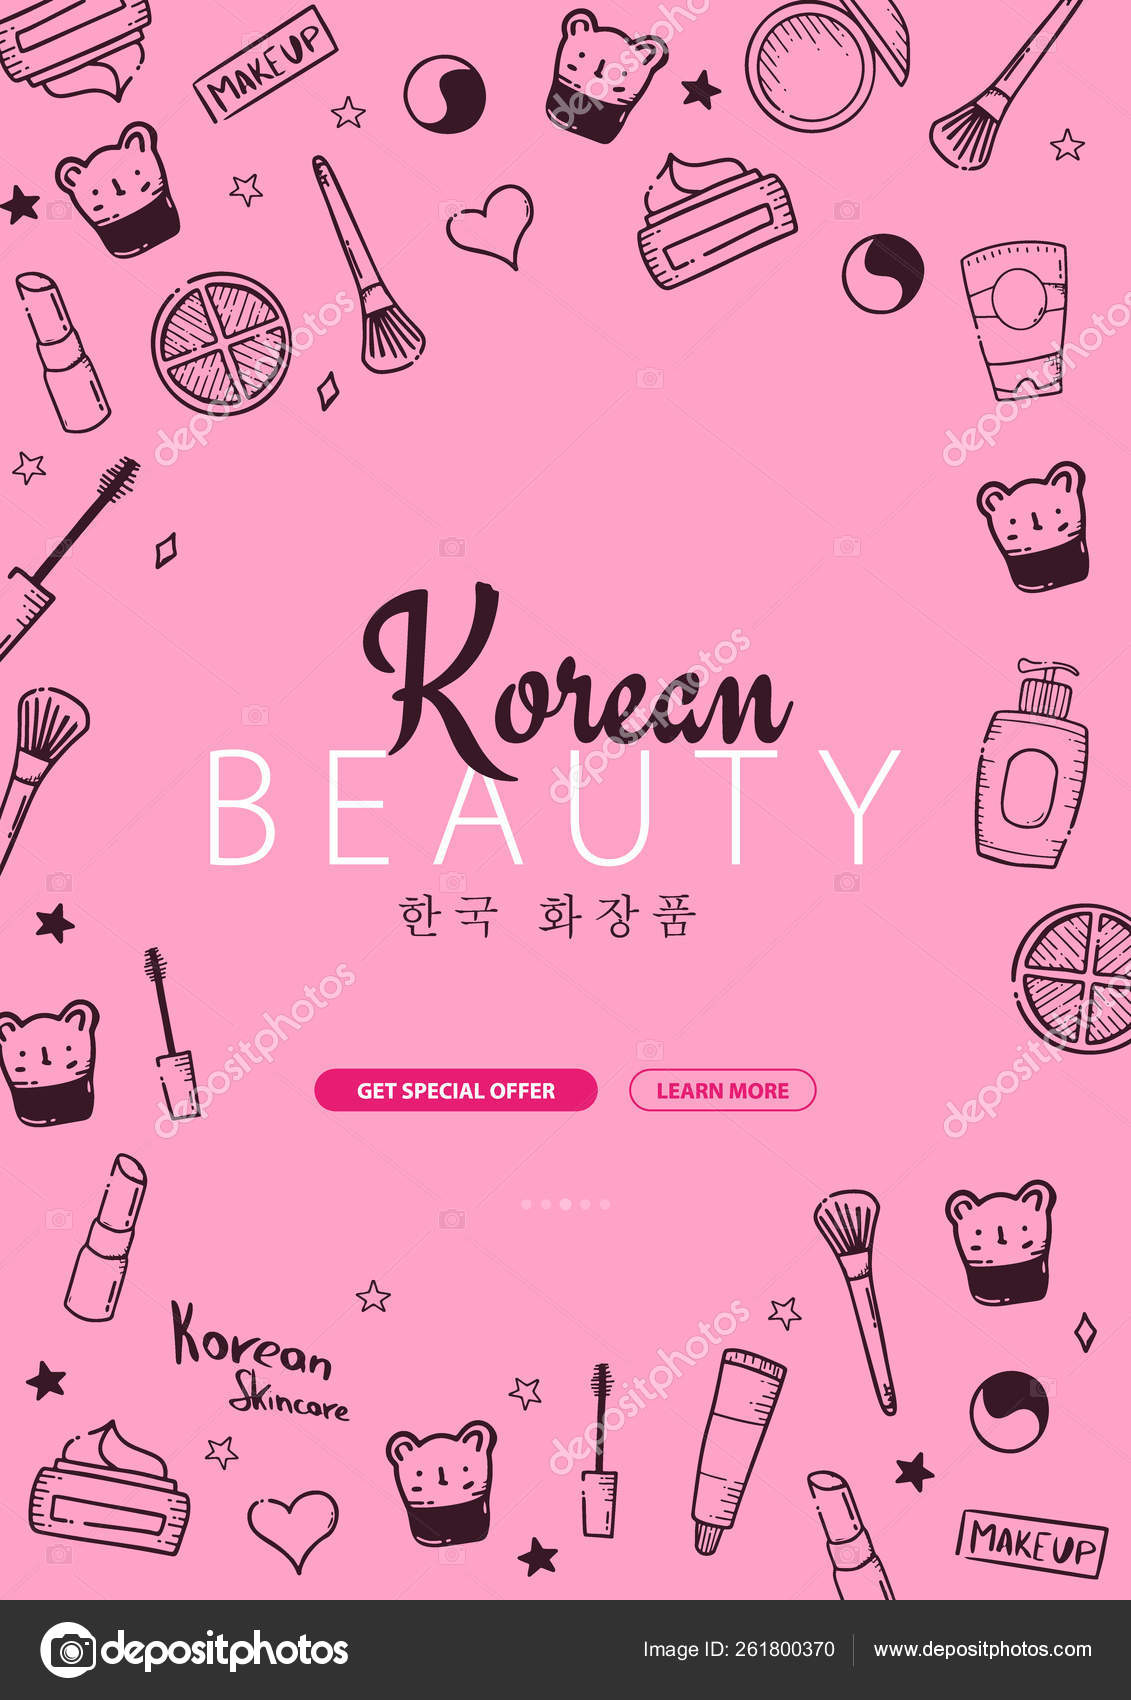 Korean Cosmetics K Beauty Banner With Hand Draw Doodle Background Skincare And Makeup Translation Korean Cosmetics Vector Illustration Stock Vector C Leo Design 261800370